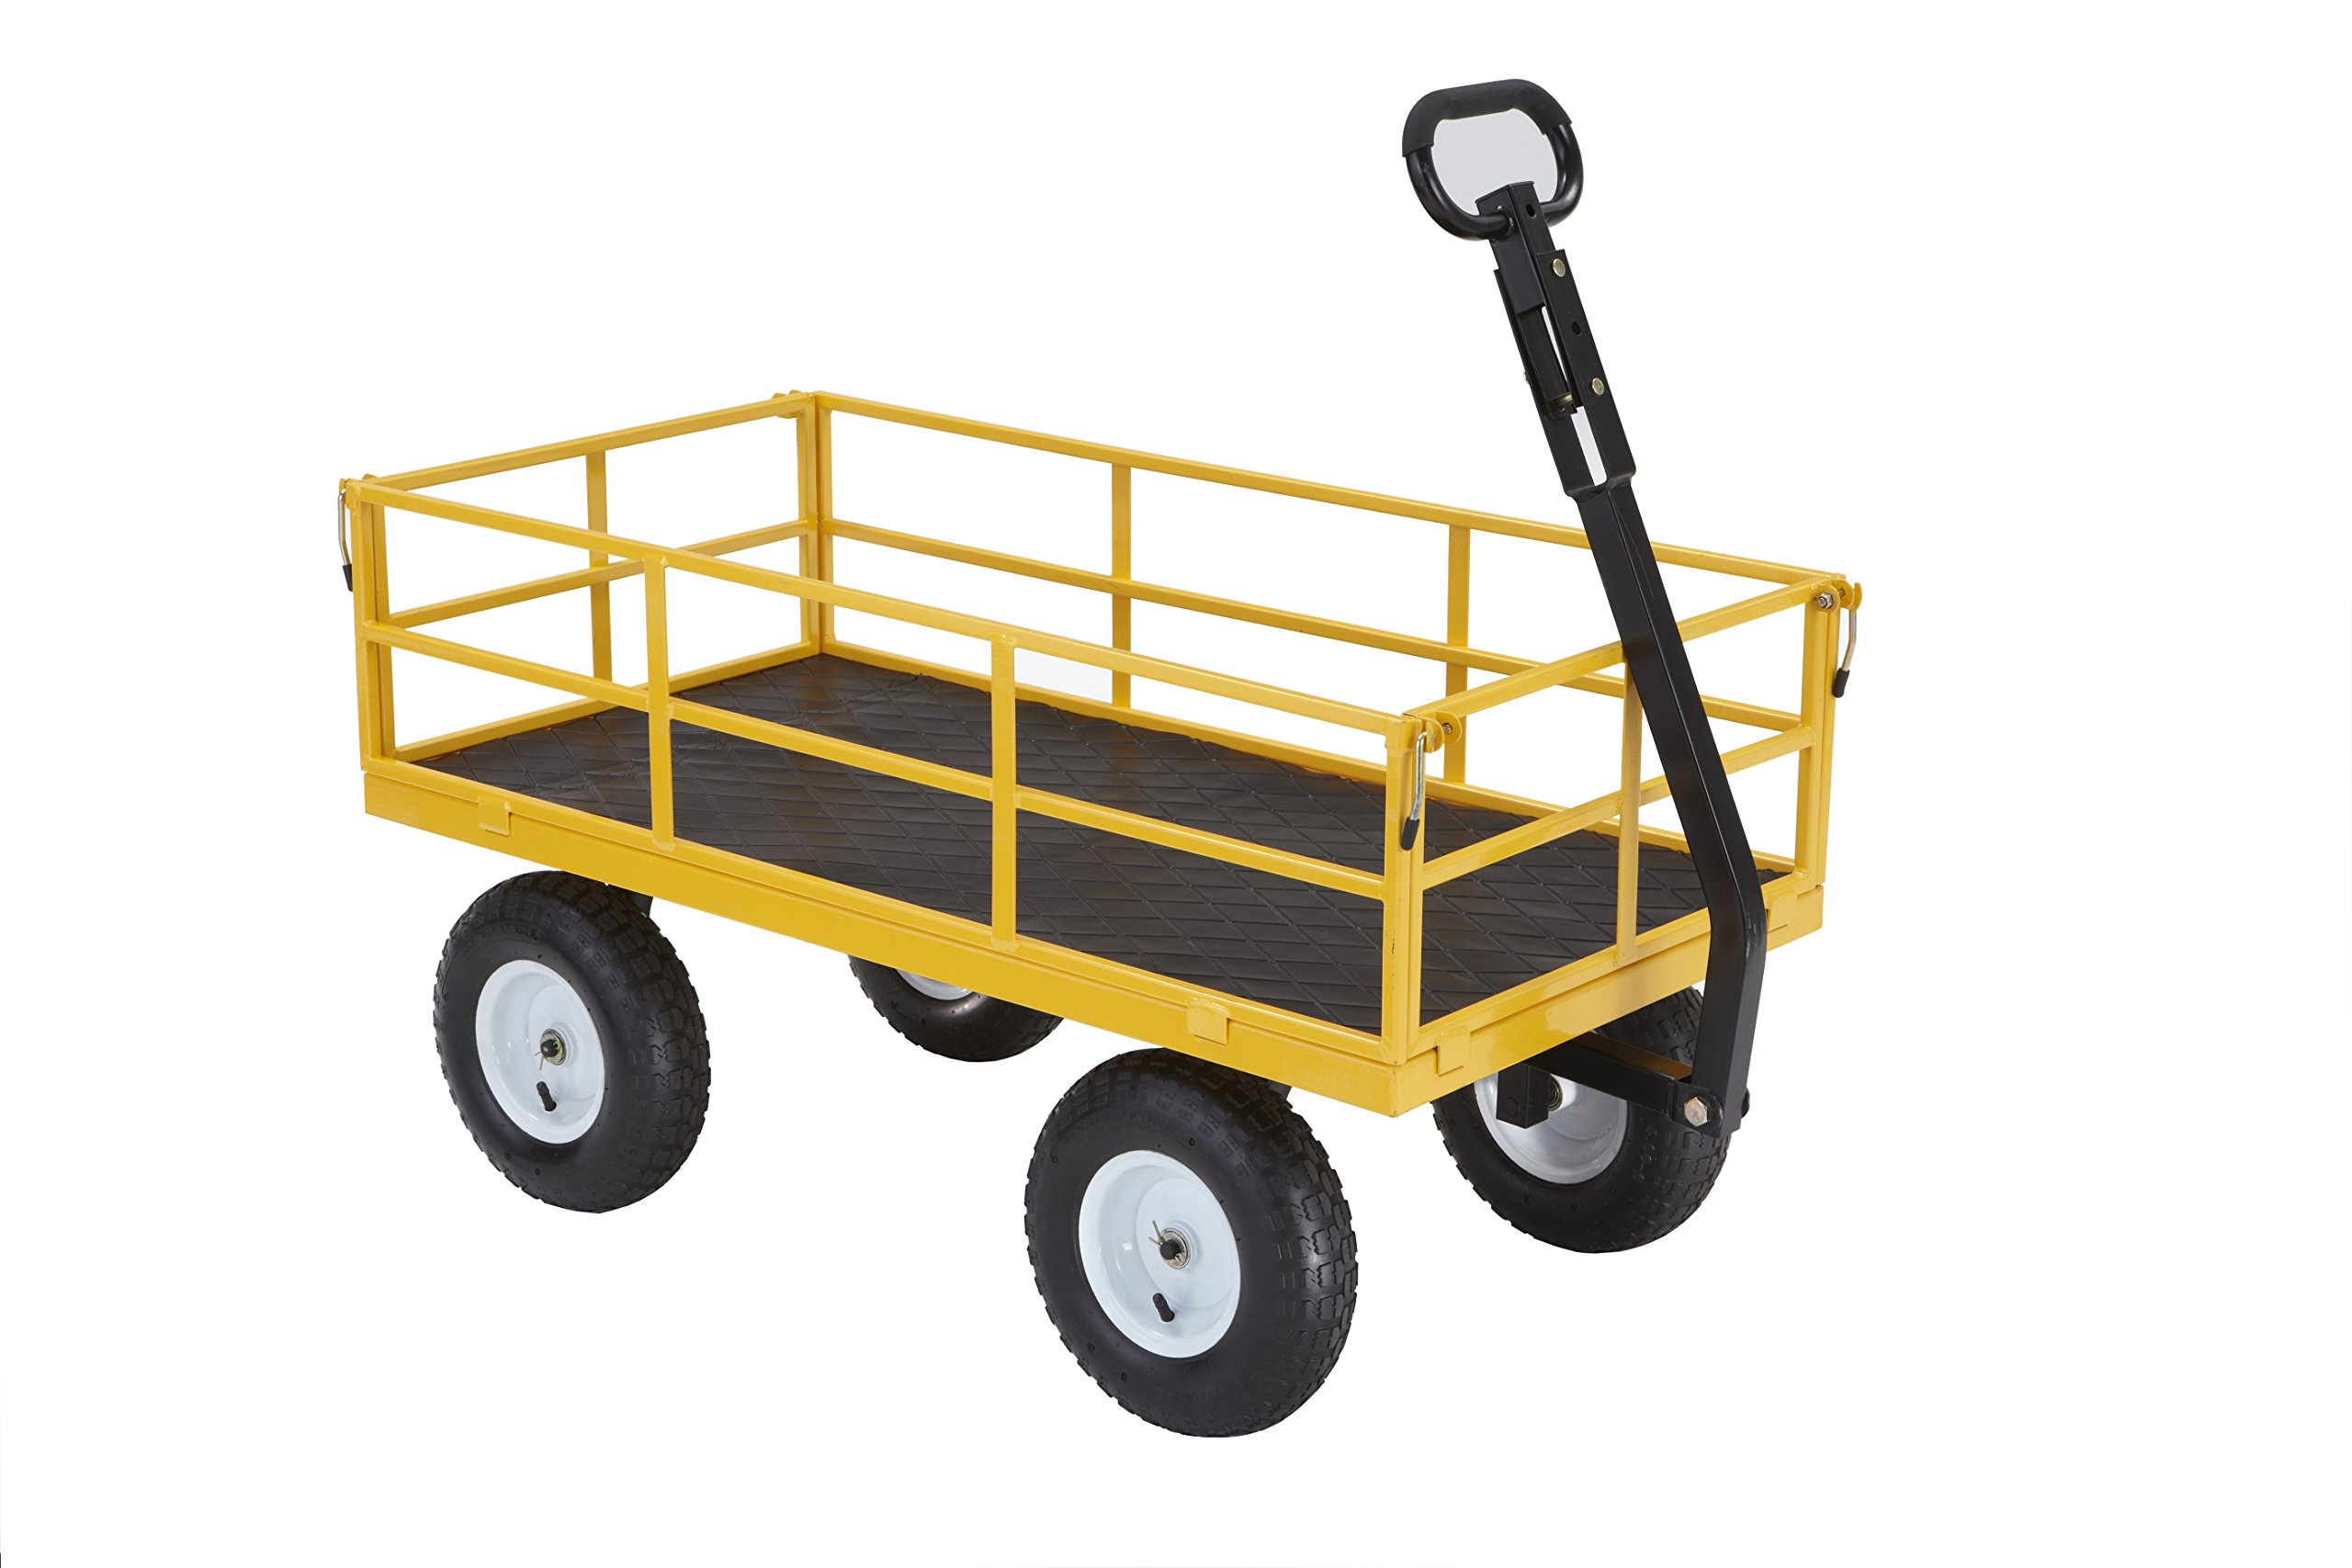 Gorilla Carts Heavy-Duty Steel Utility Cart with Removable Sides and 13'' Tires with 1200 lb Capacity, Yellow by Gorilla Carts